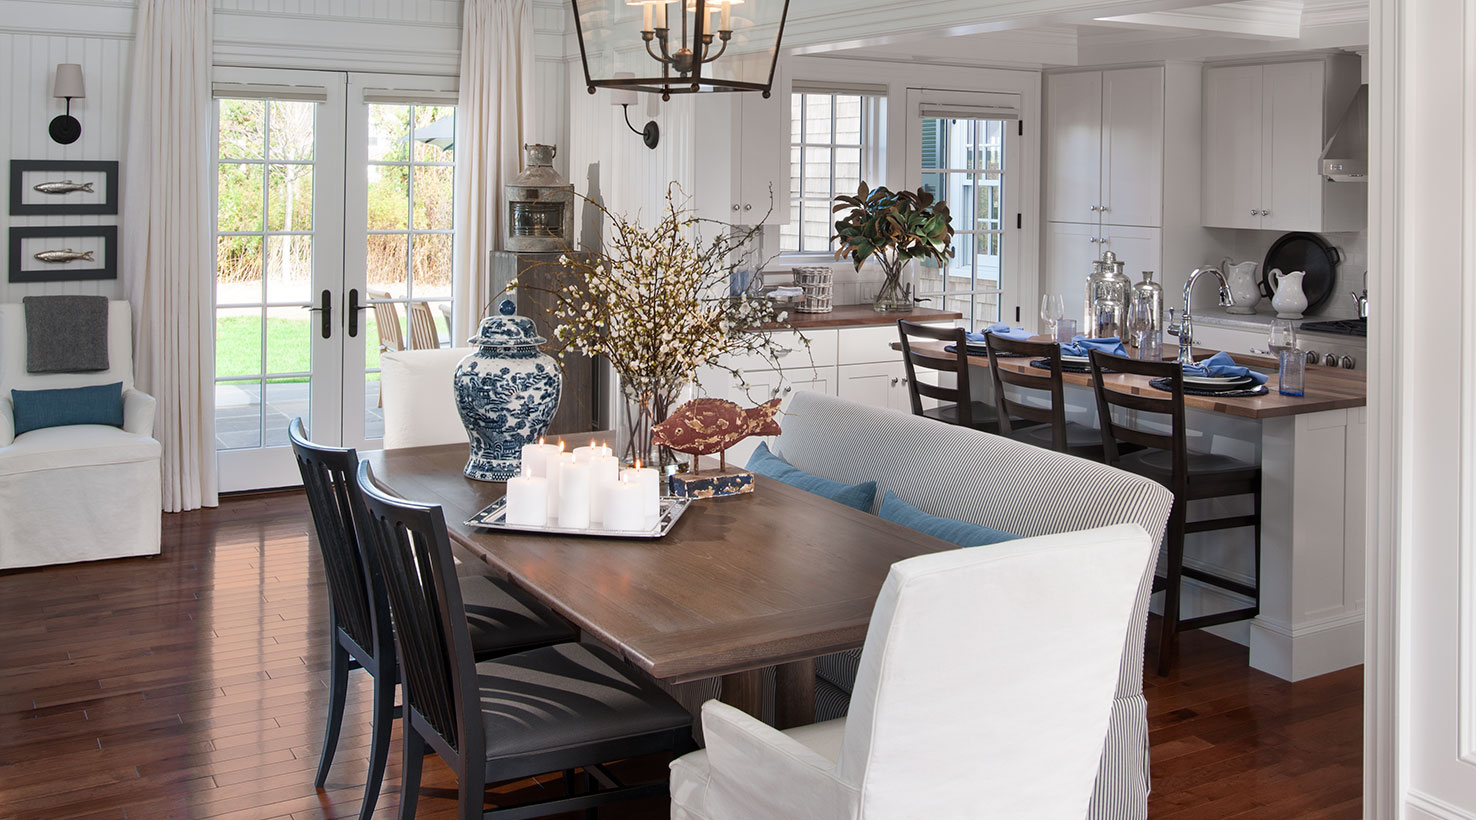 Hgtv dream home 2015 the look of hgtv sponsored by for Dining room decor ideas 2015